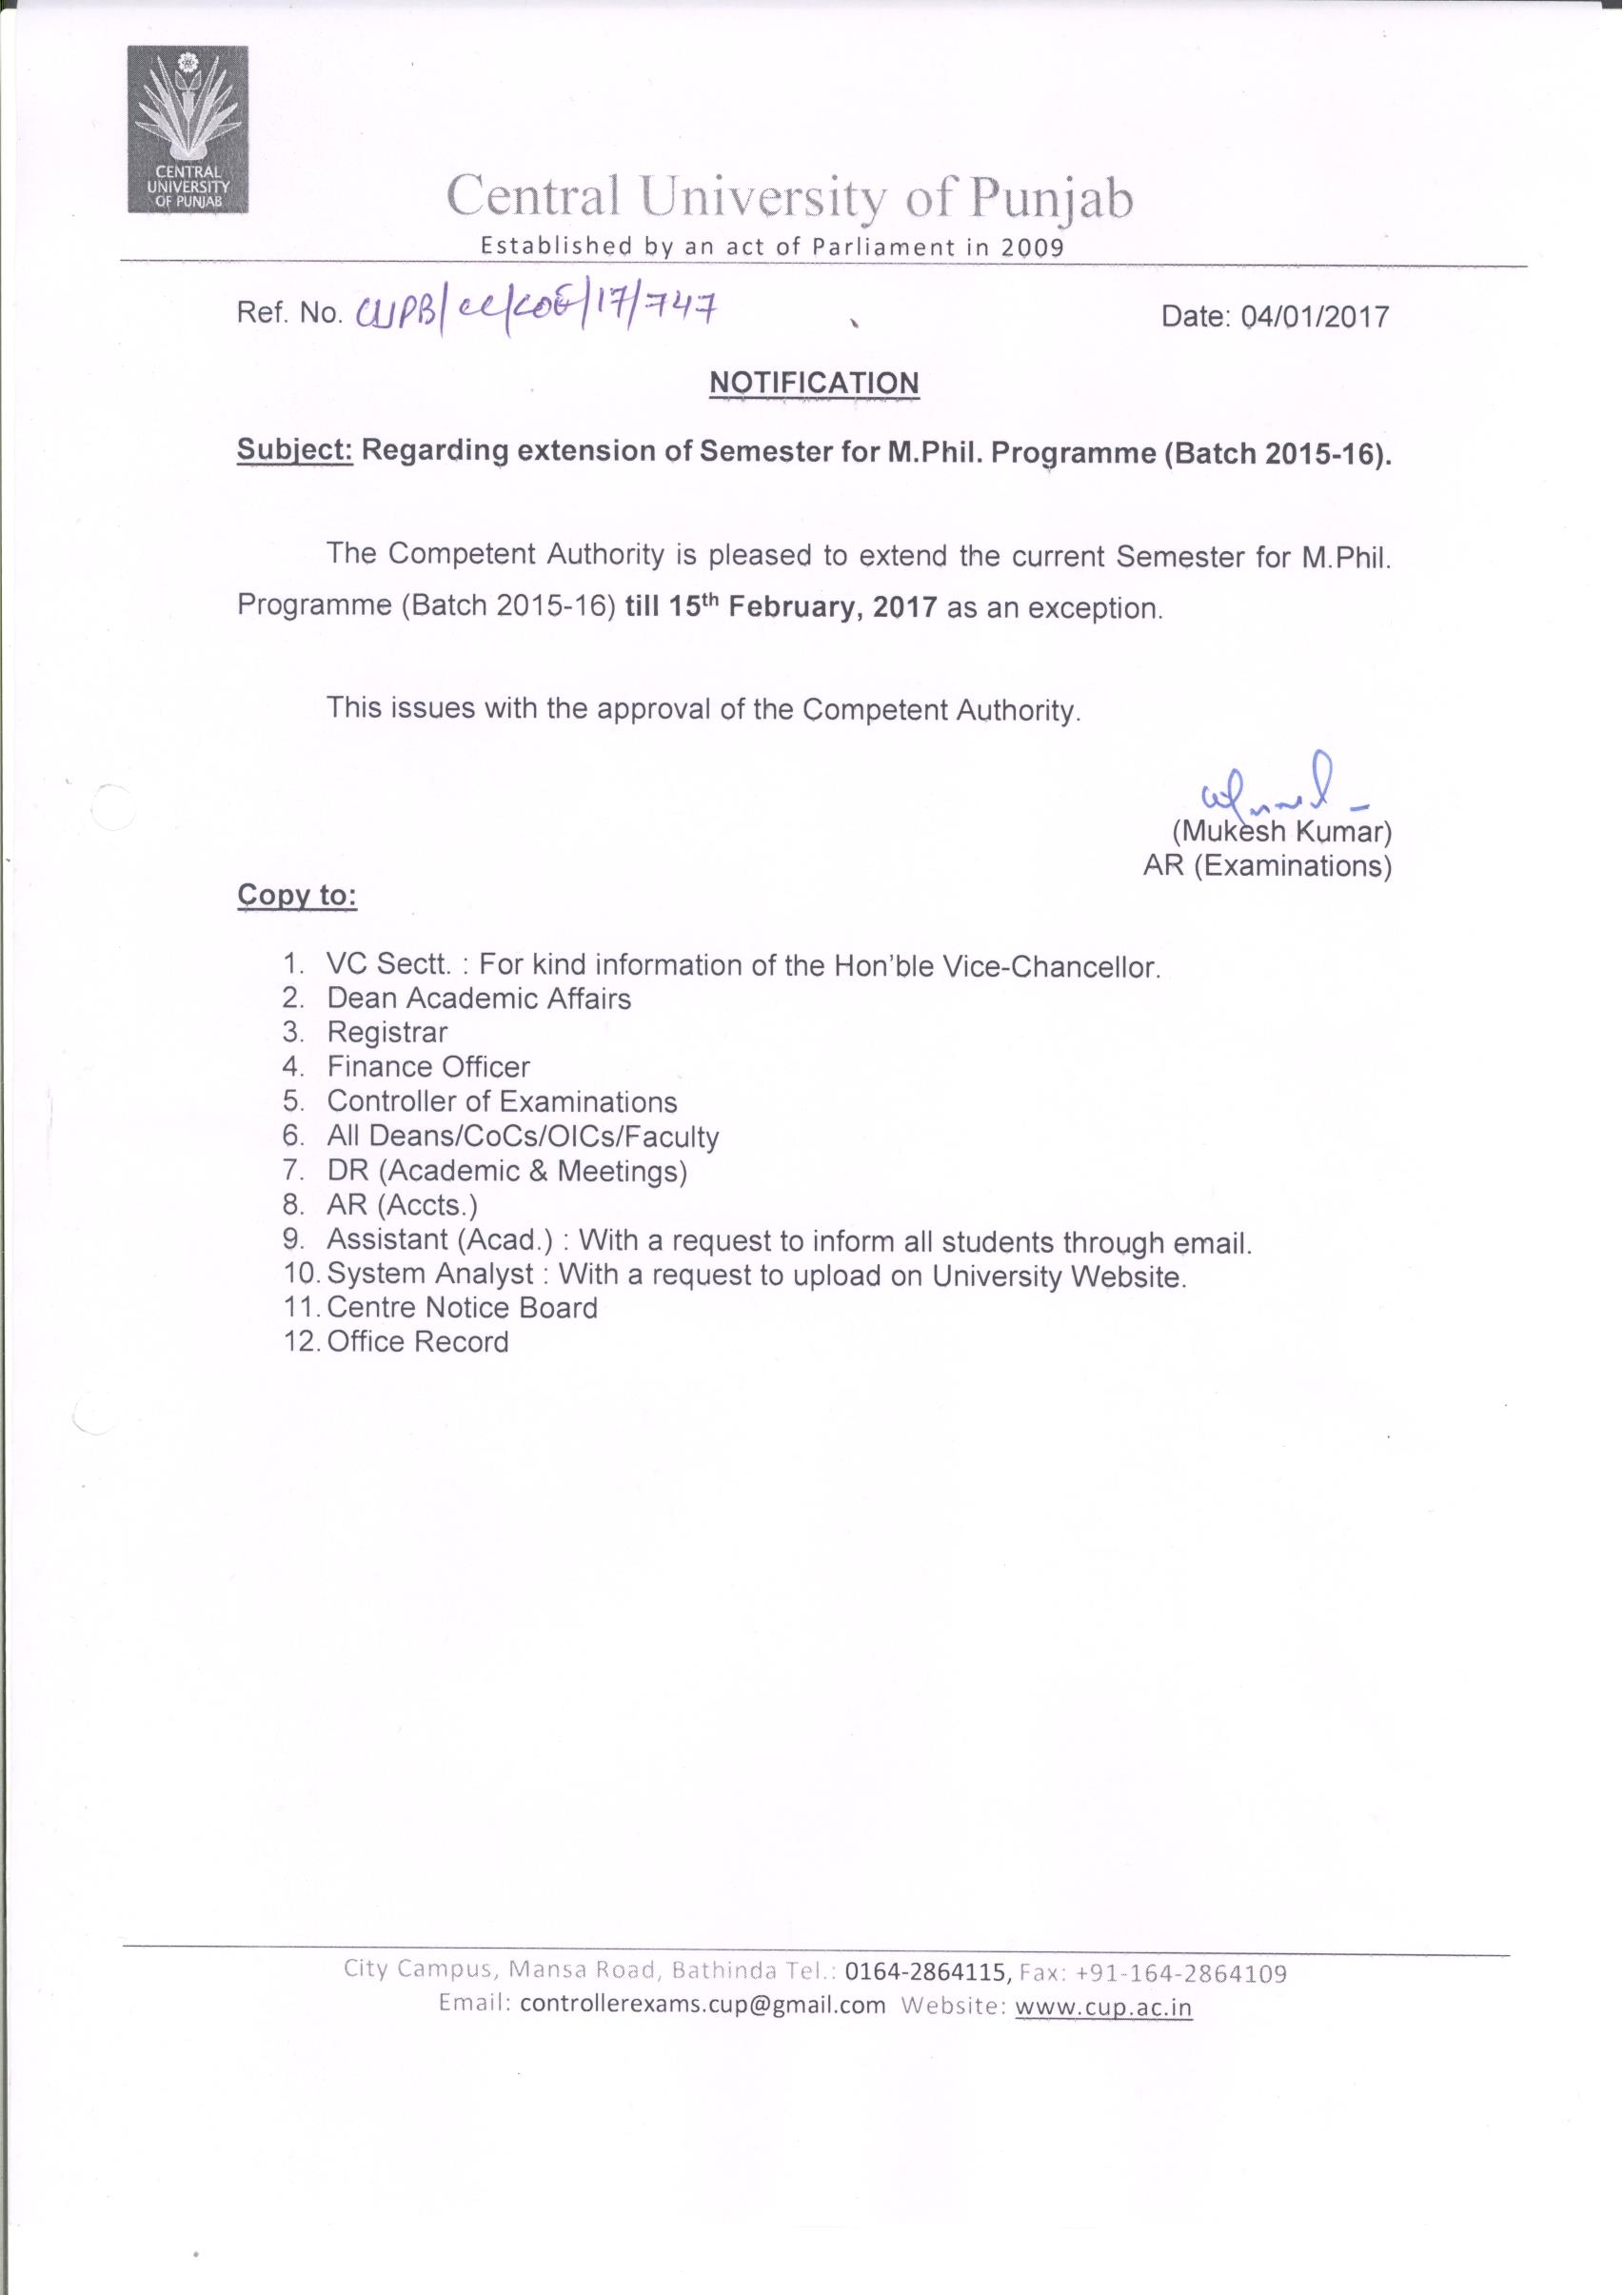 Welcome to central university of punjab bathinda extension for mil dissertation yadclub Images